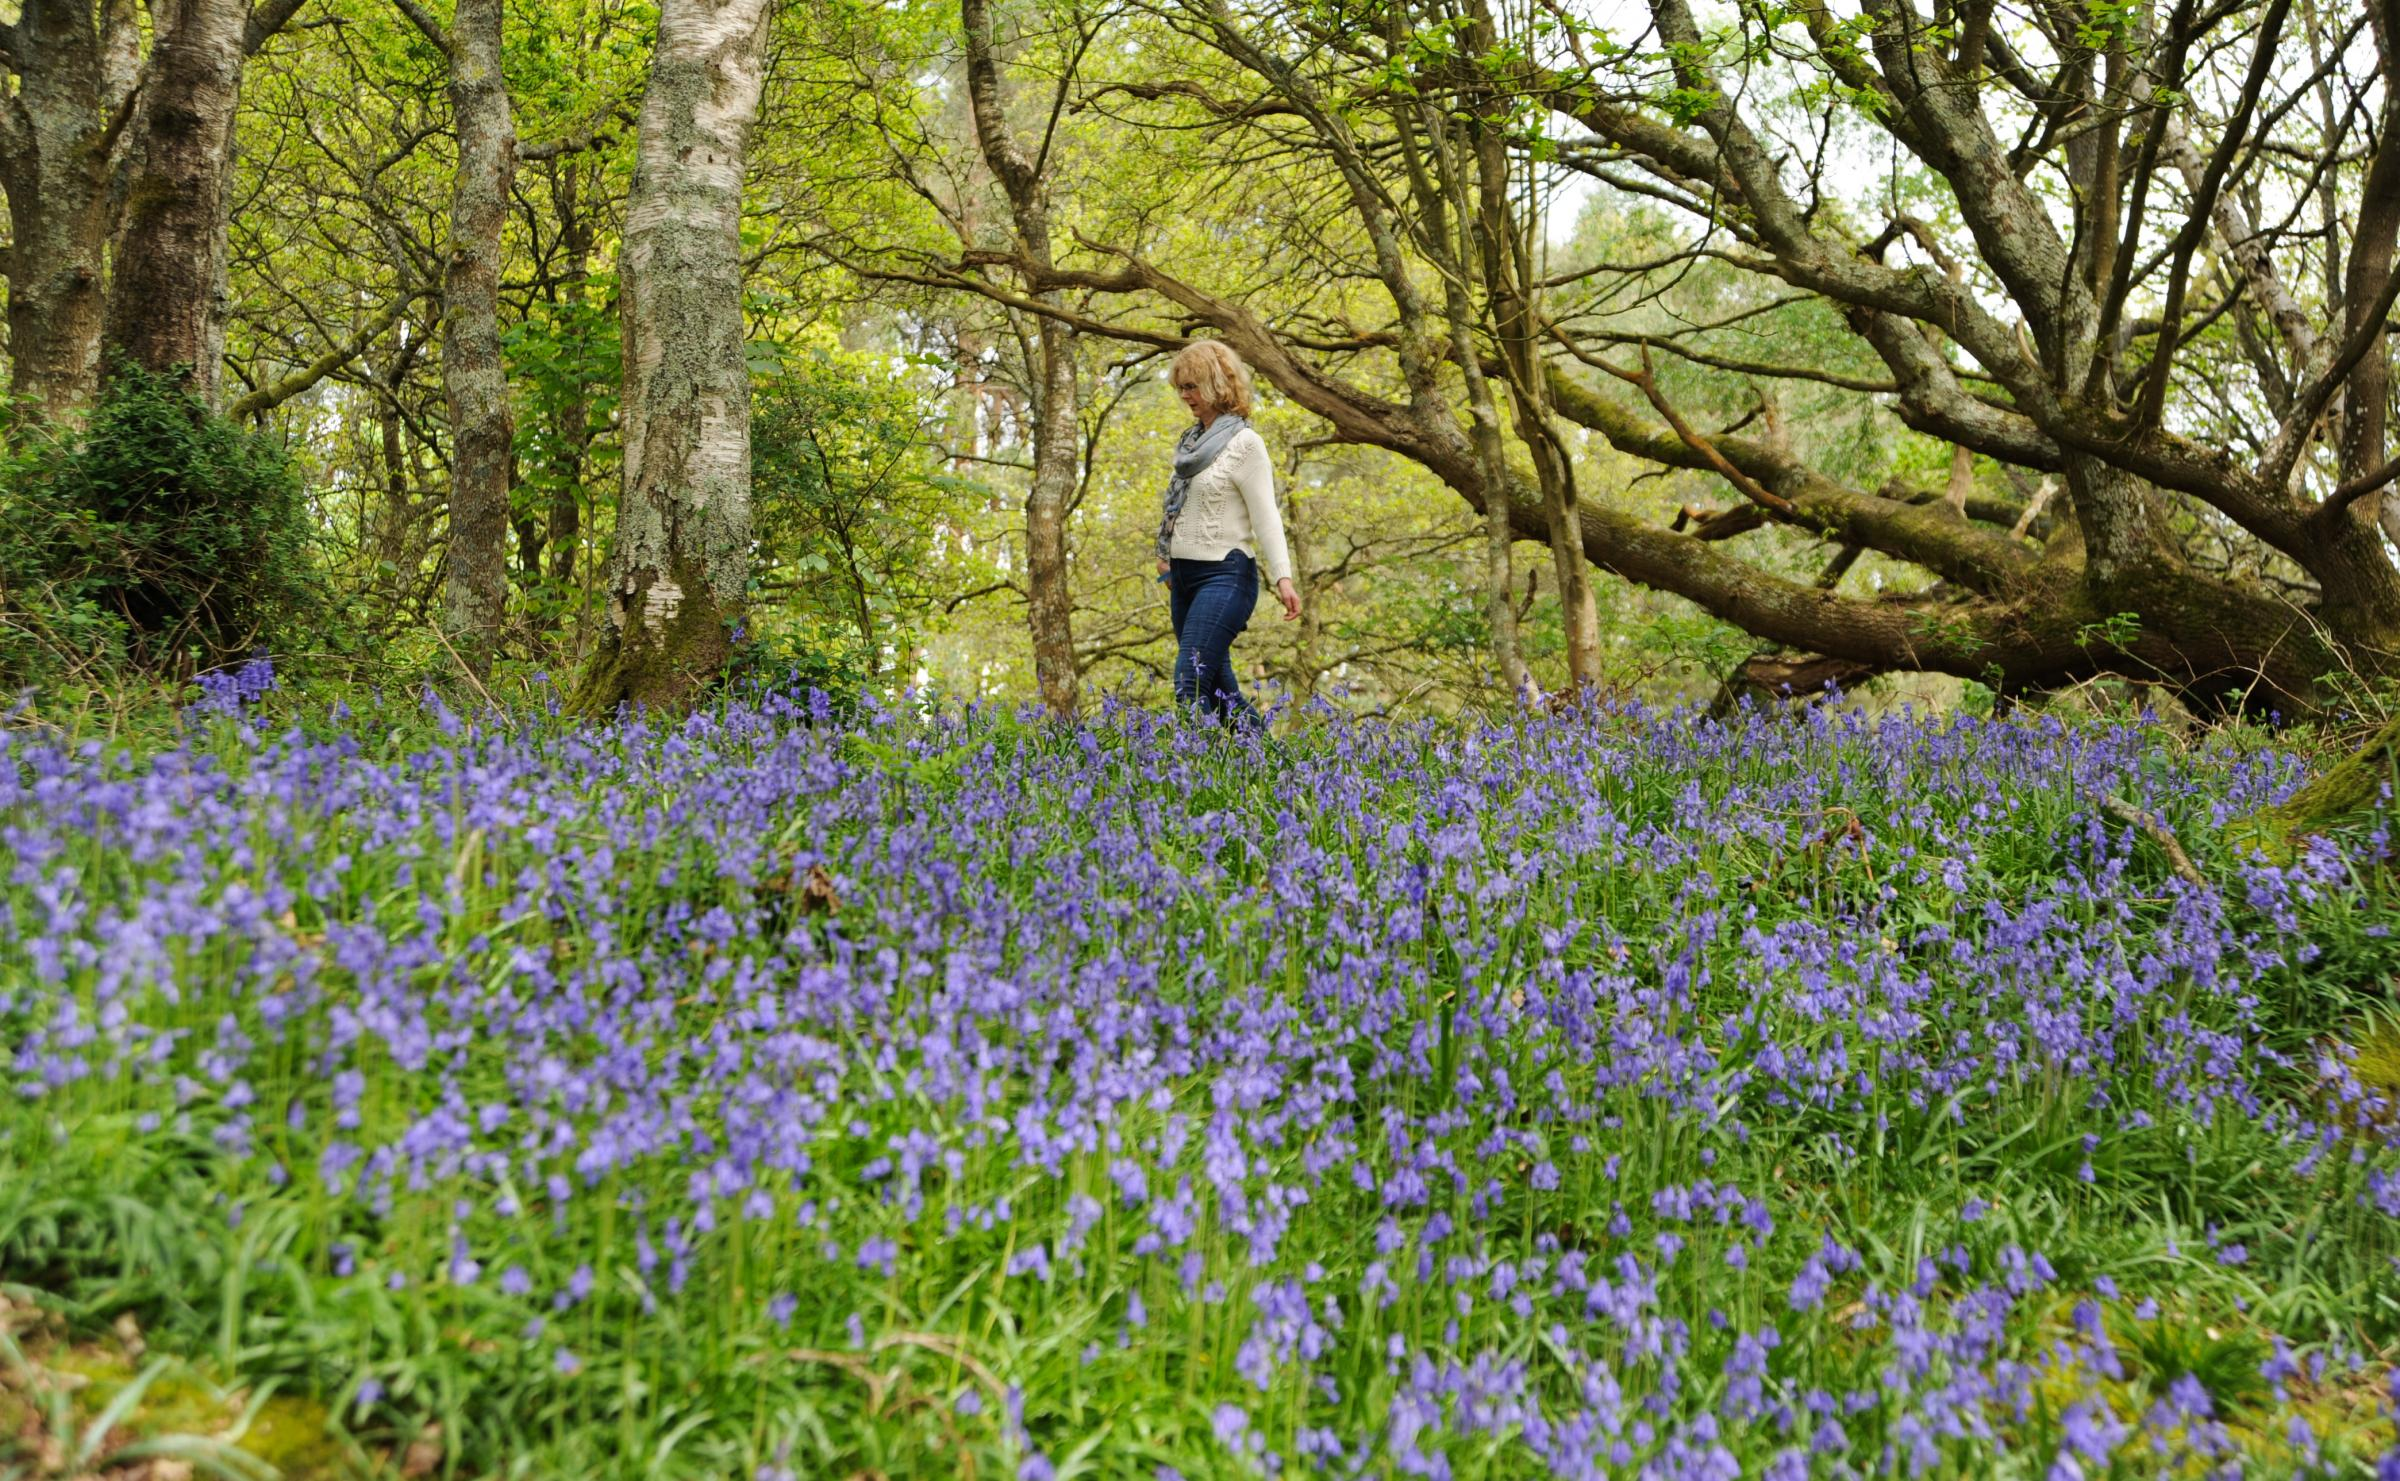 Bluebells are currently on display early in Pulborough due to the recent warm weather